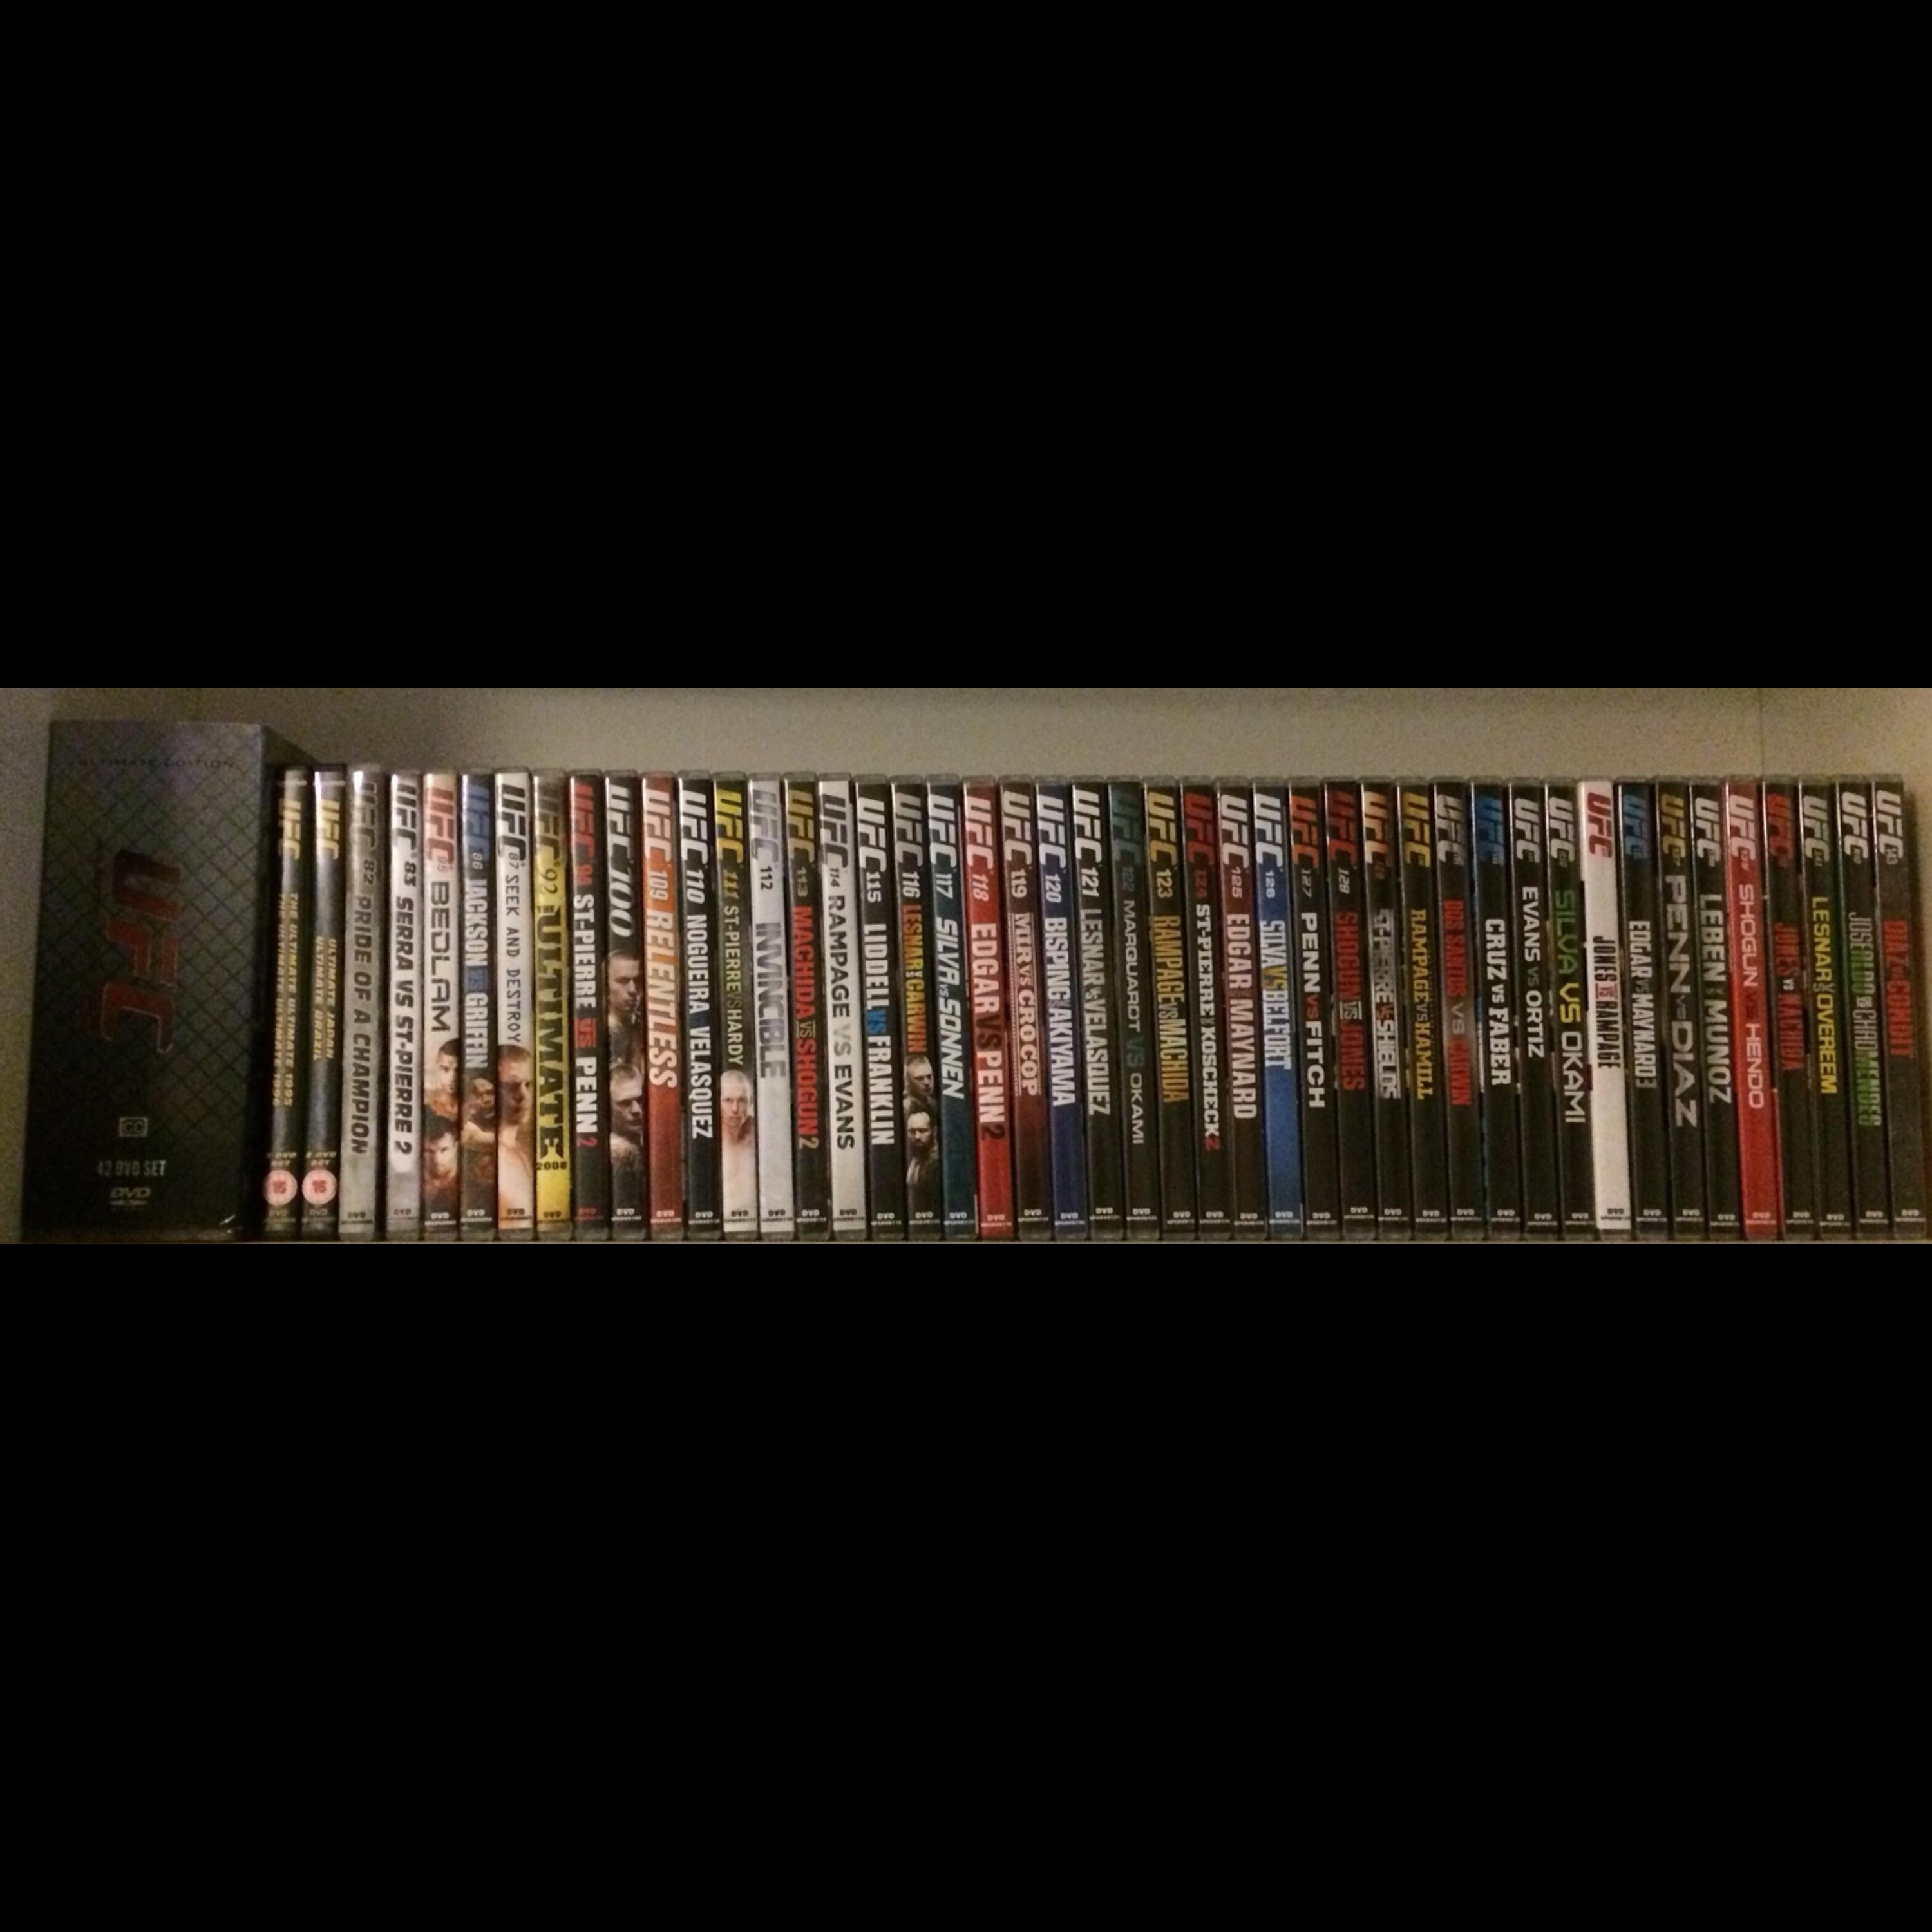 Ufc Dvd Collection In Np19 Newport For 120 00 For Sale Shpock